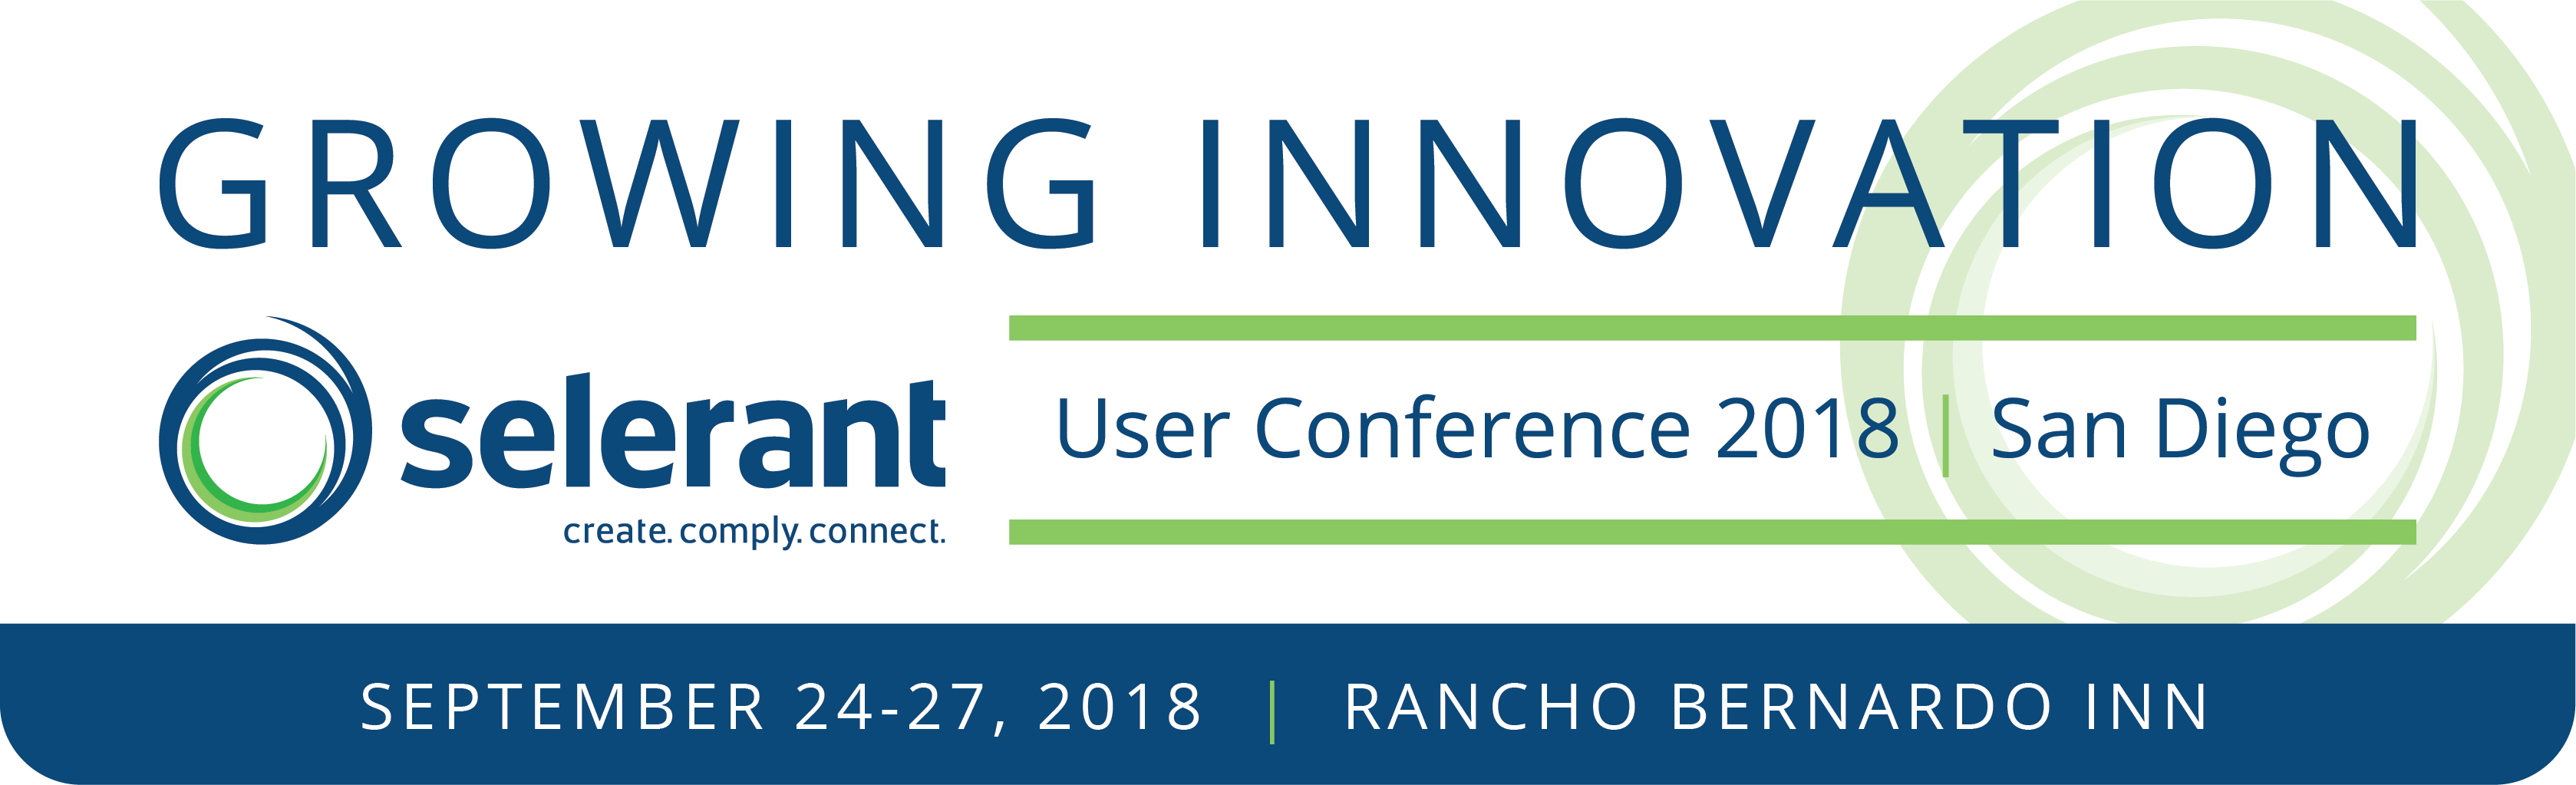 North American User Conference